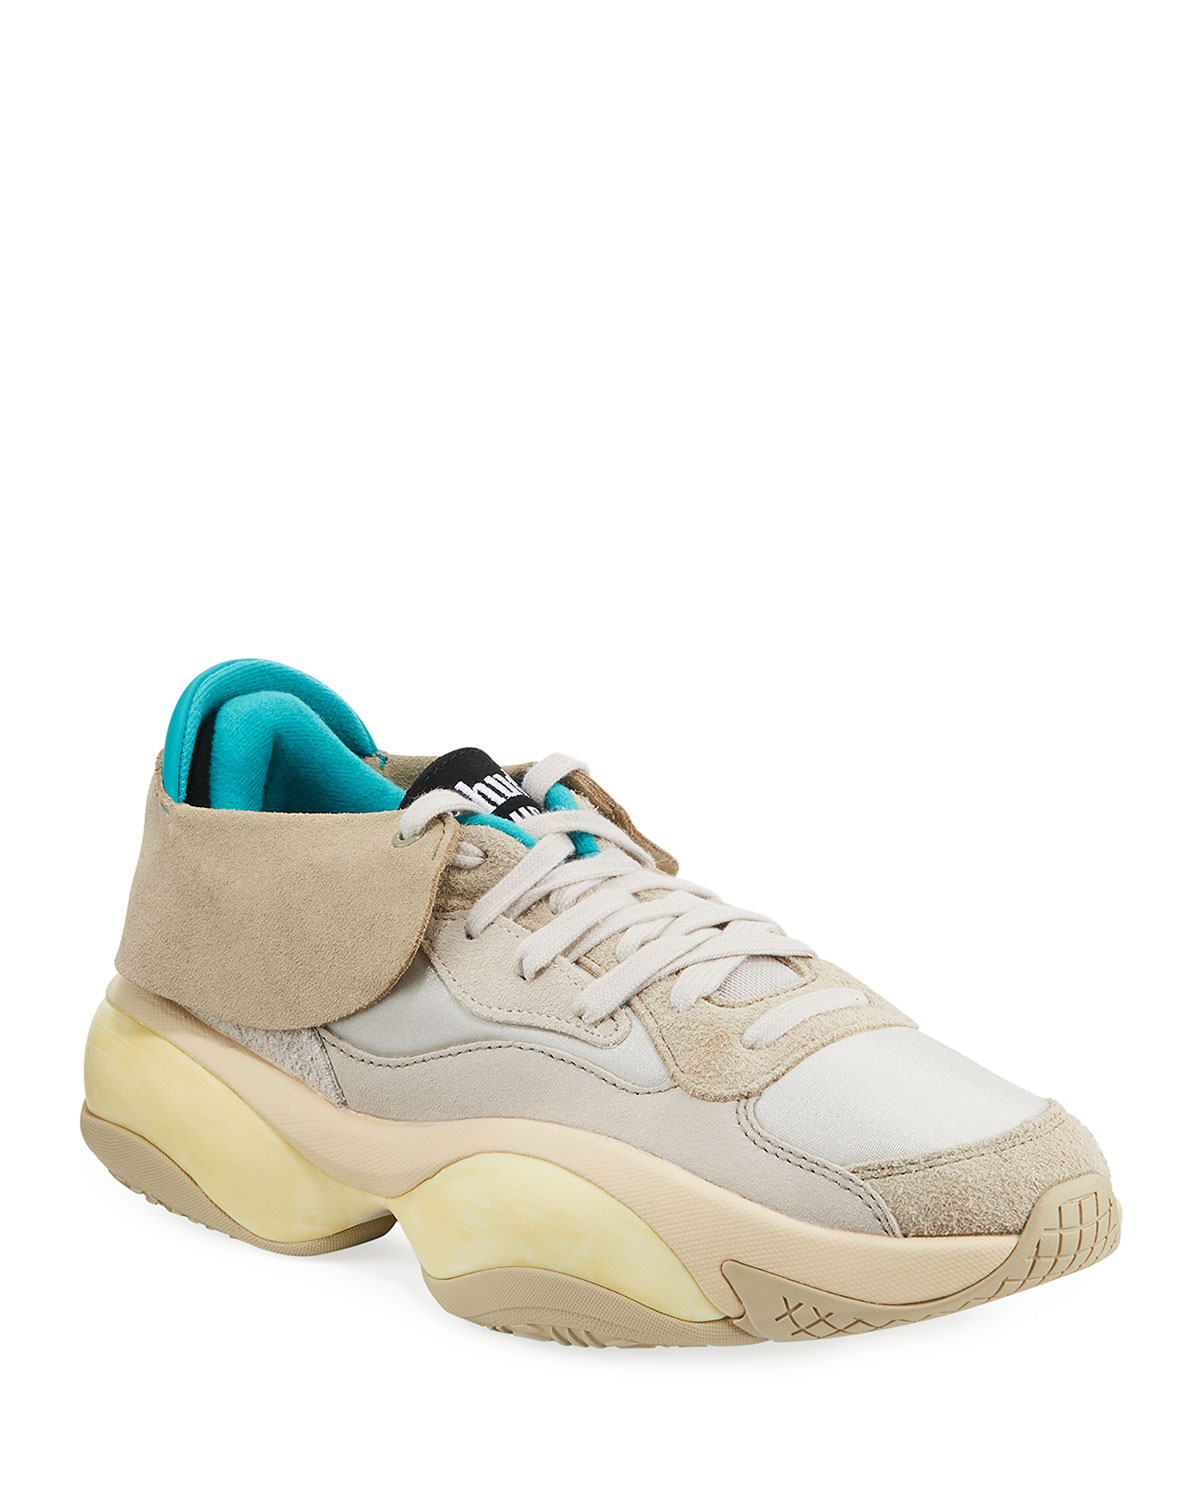 Men's Alteration Rhude Sneakers With Removable Collar by Puma